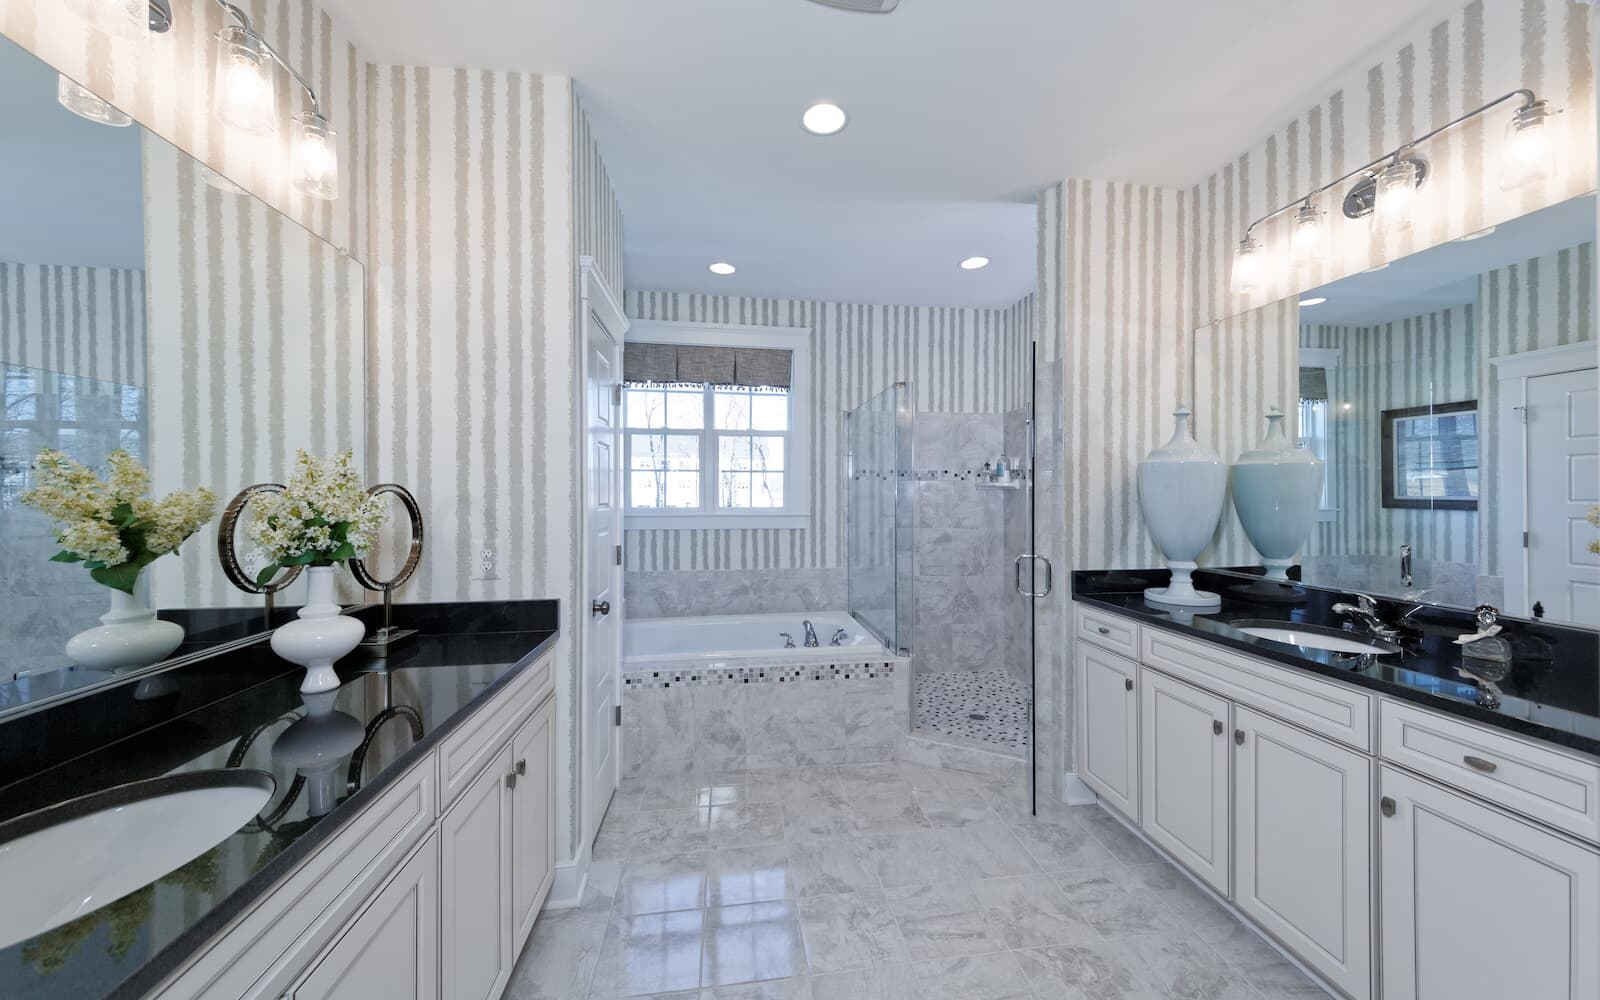 BecknerII-bathroom-single-family-home-potomac-shores-va-potomac-shores-brookfield-residential